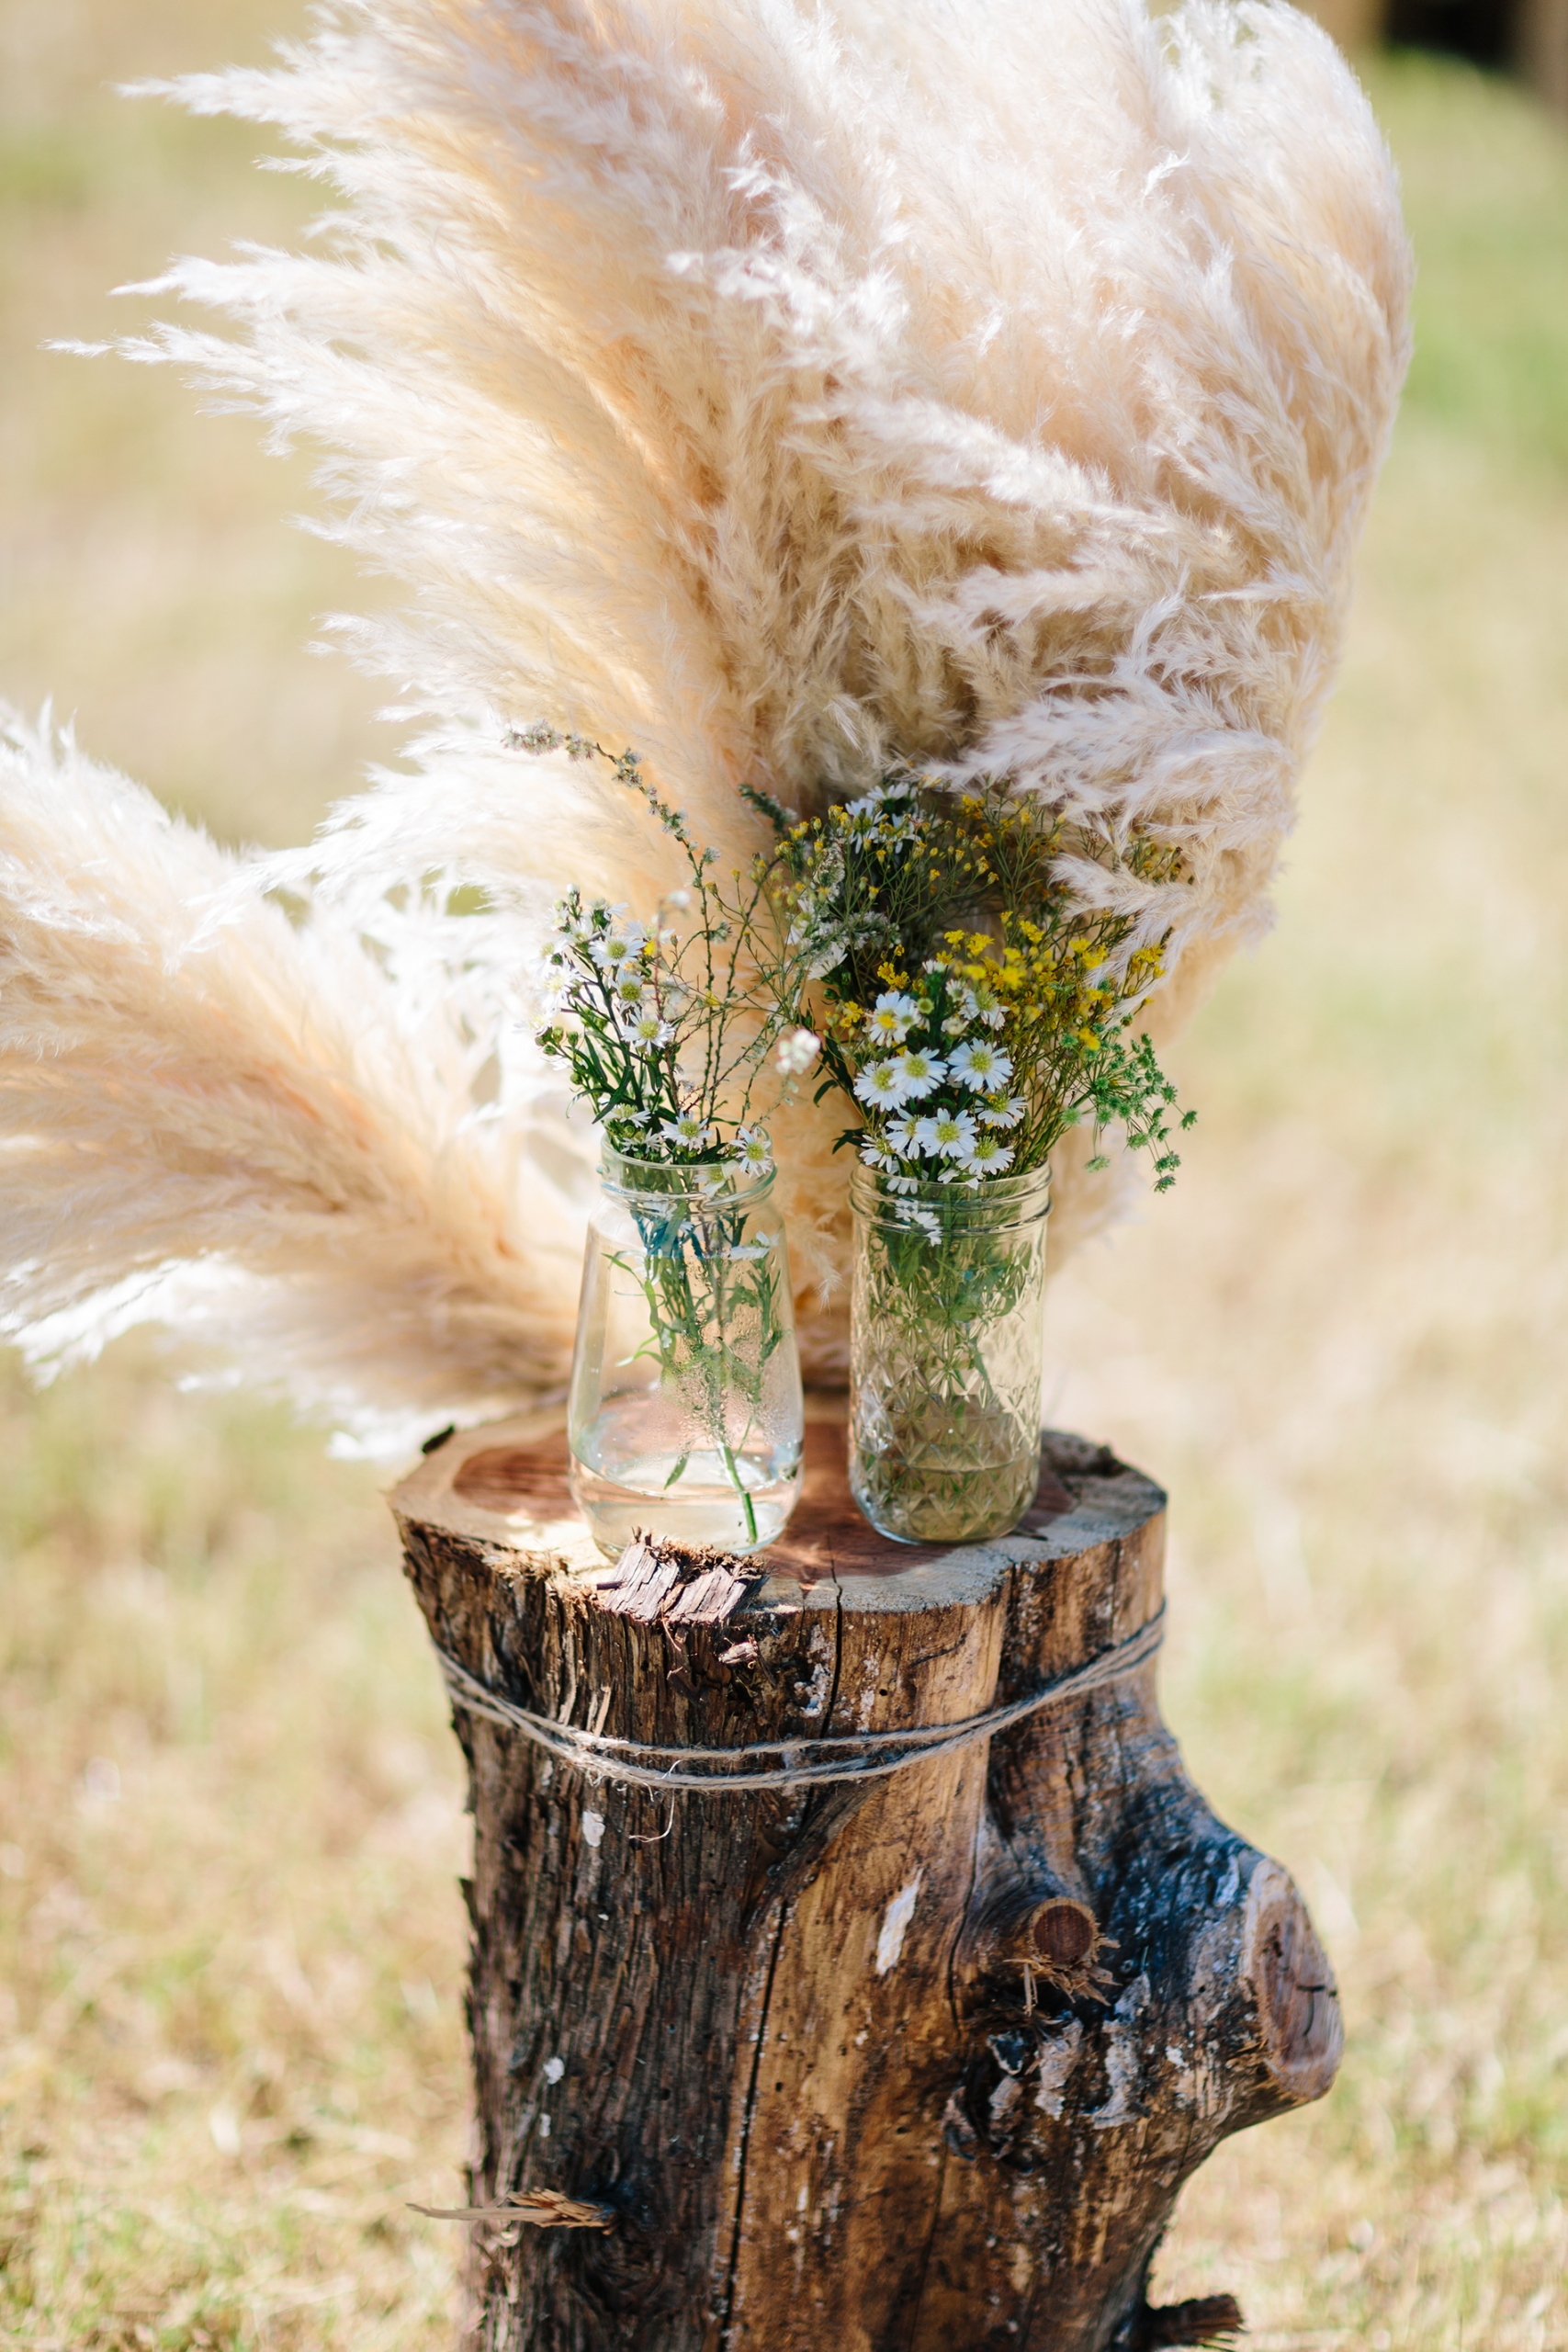 Fun, Scenic, Lakeside Wedding with Dried Floral Bouquets | Studio 1208 67